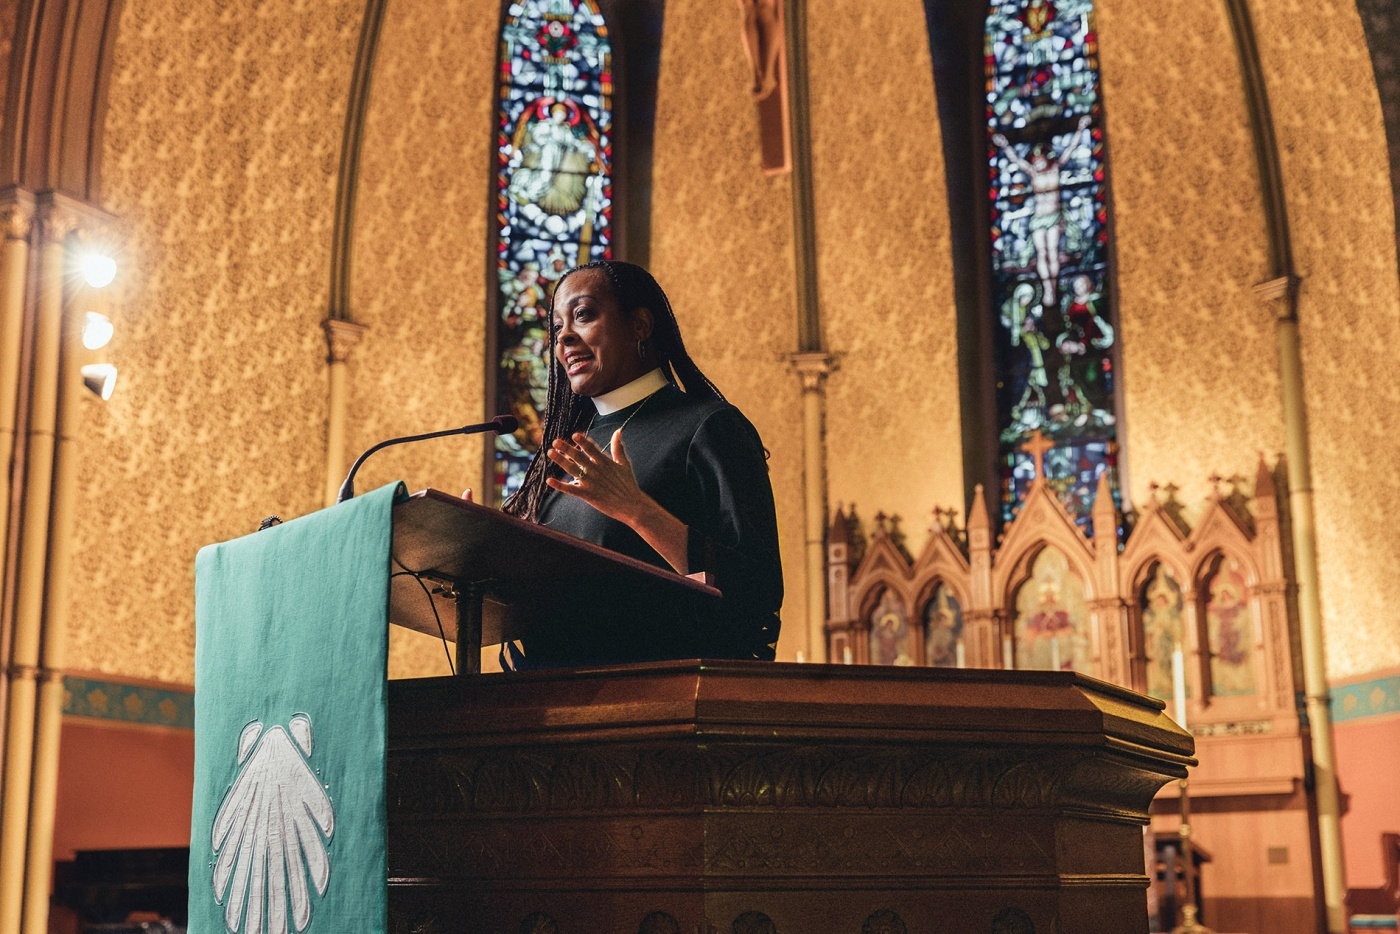 Image of Paula Clark at the pulpit of St. James Cathedral